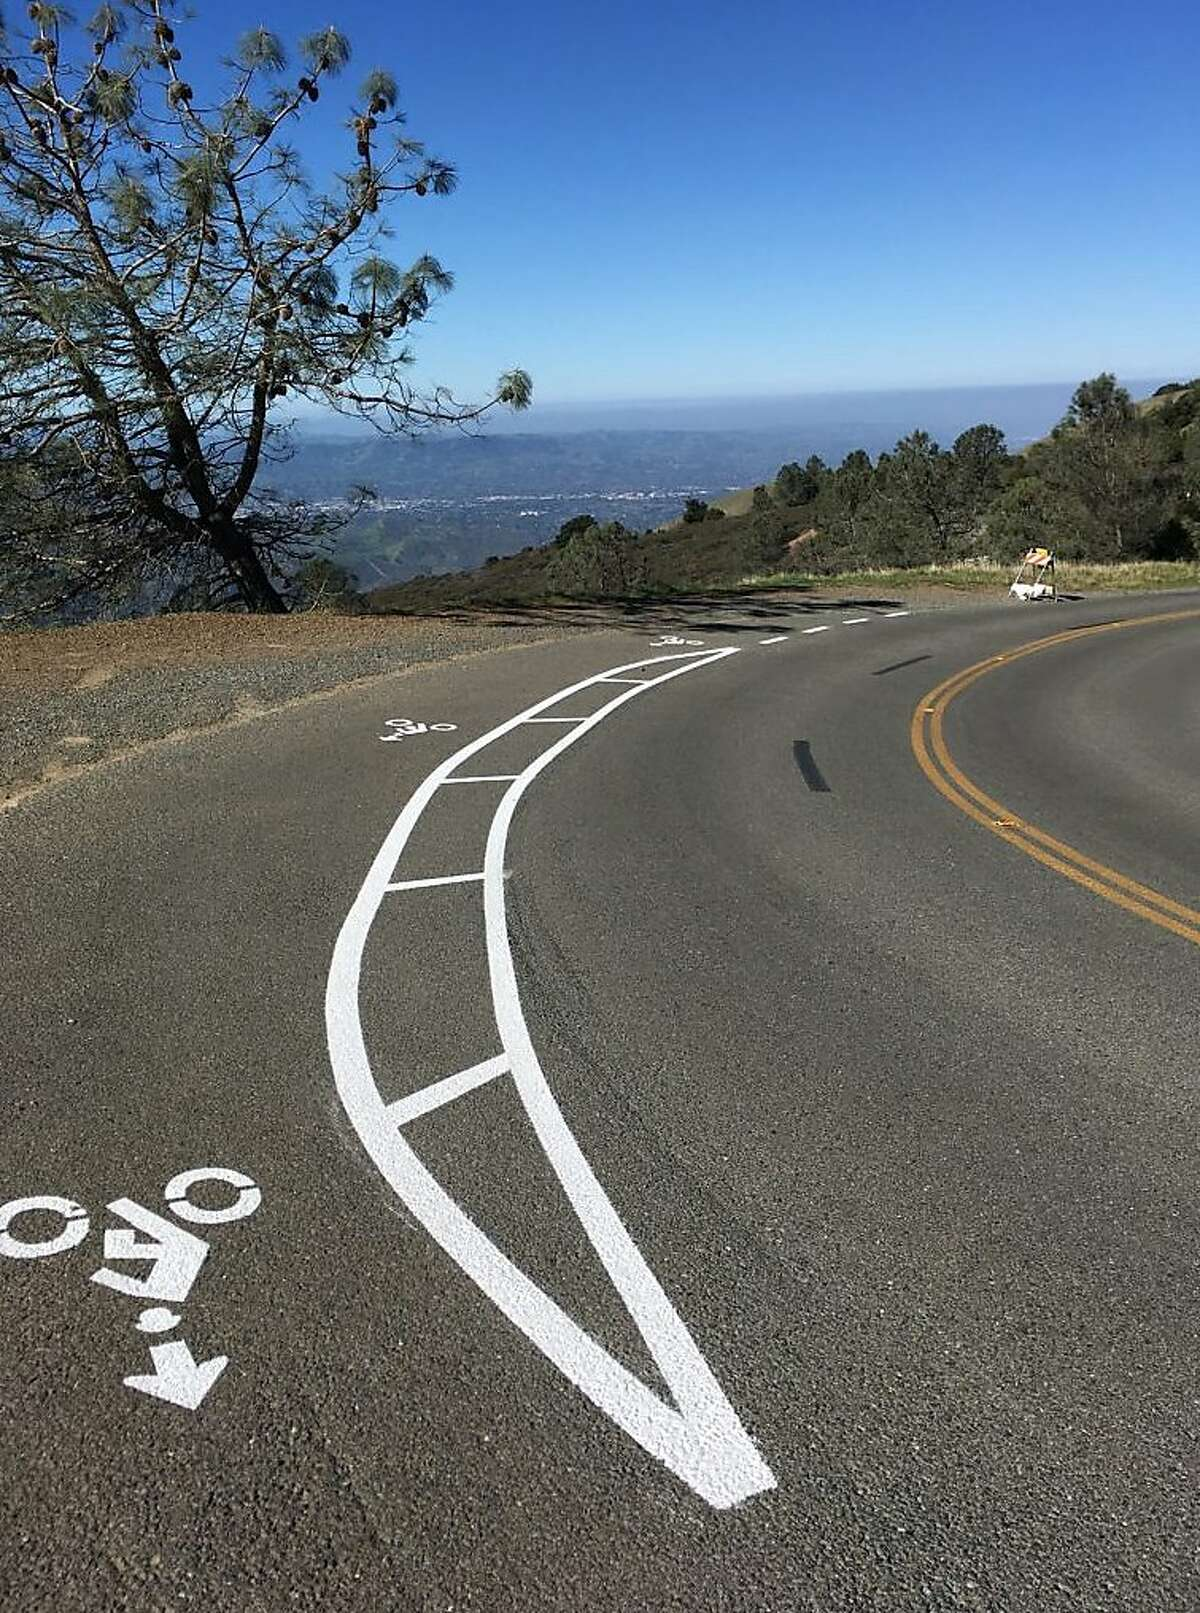 A prototype of one of the first bicycle turnouts on the road to the Mount Diablo Summit to allow cyclists grinding uphill a safe way for vehicles to pass